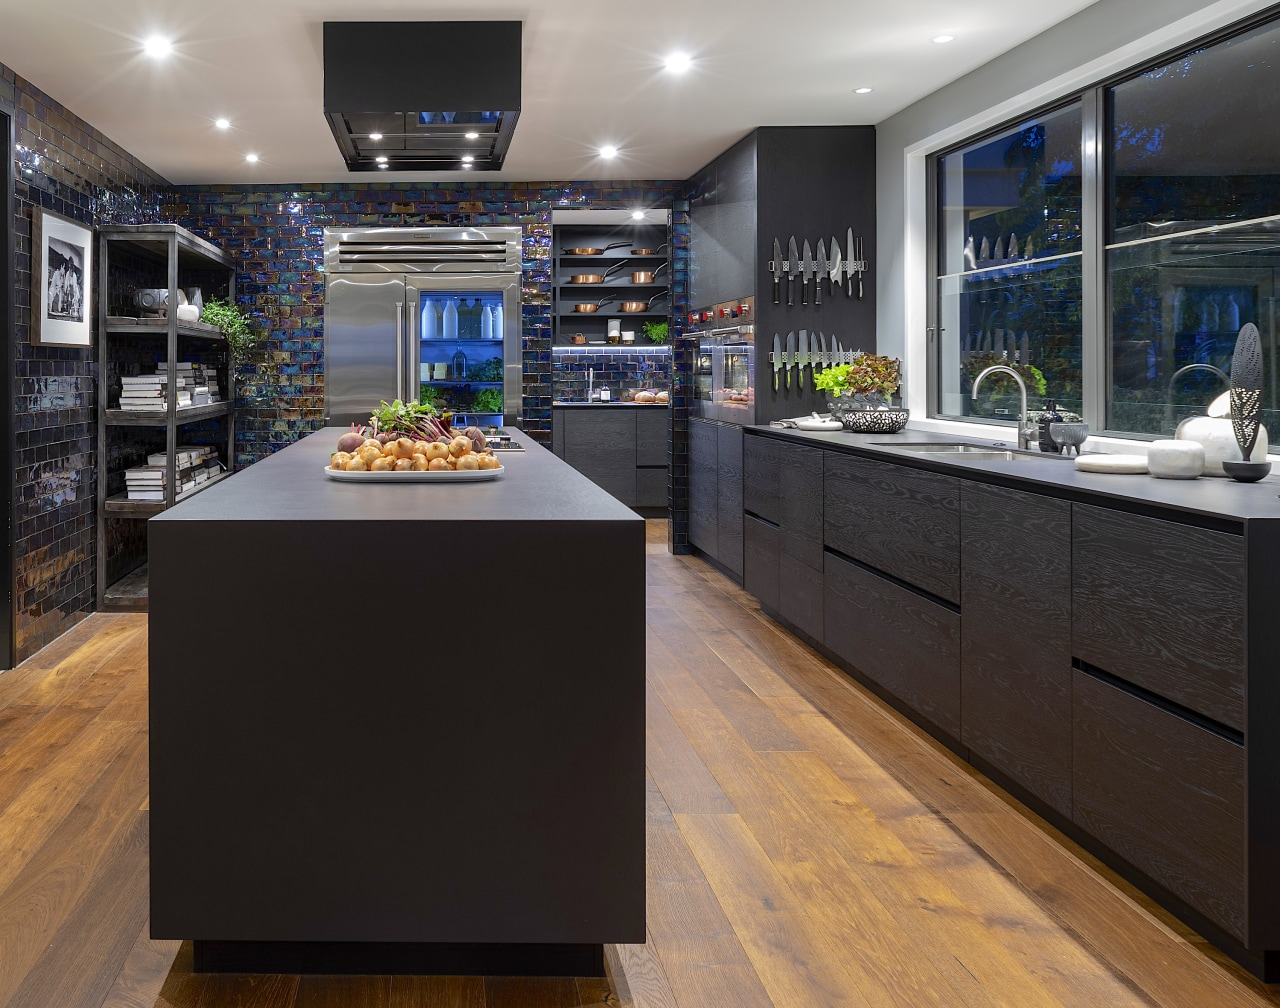 Having the perimeter benchtops sit flush with the black, gray